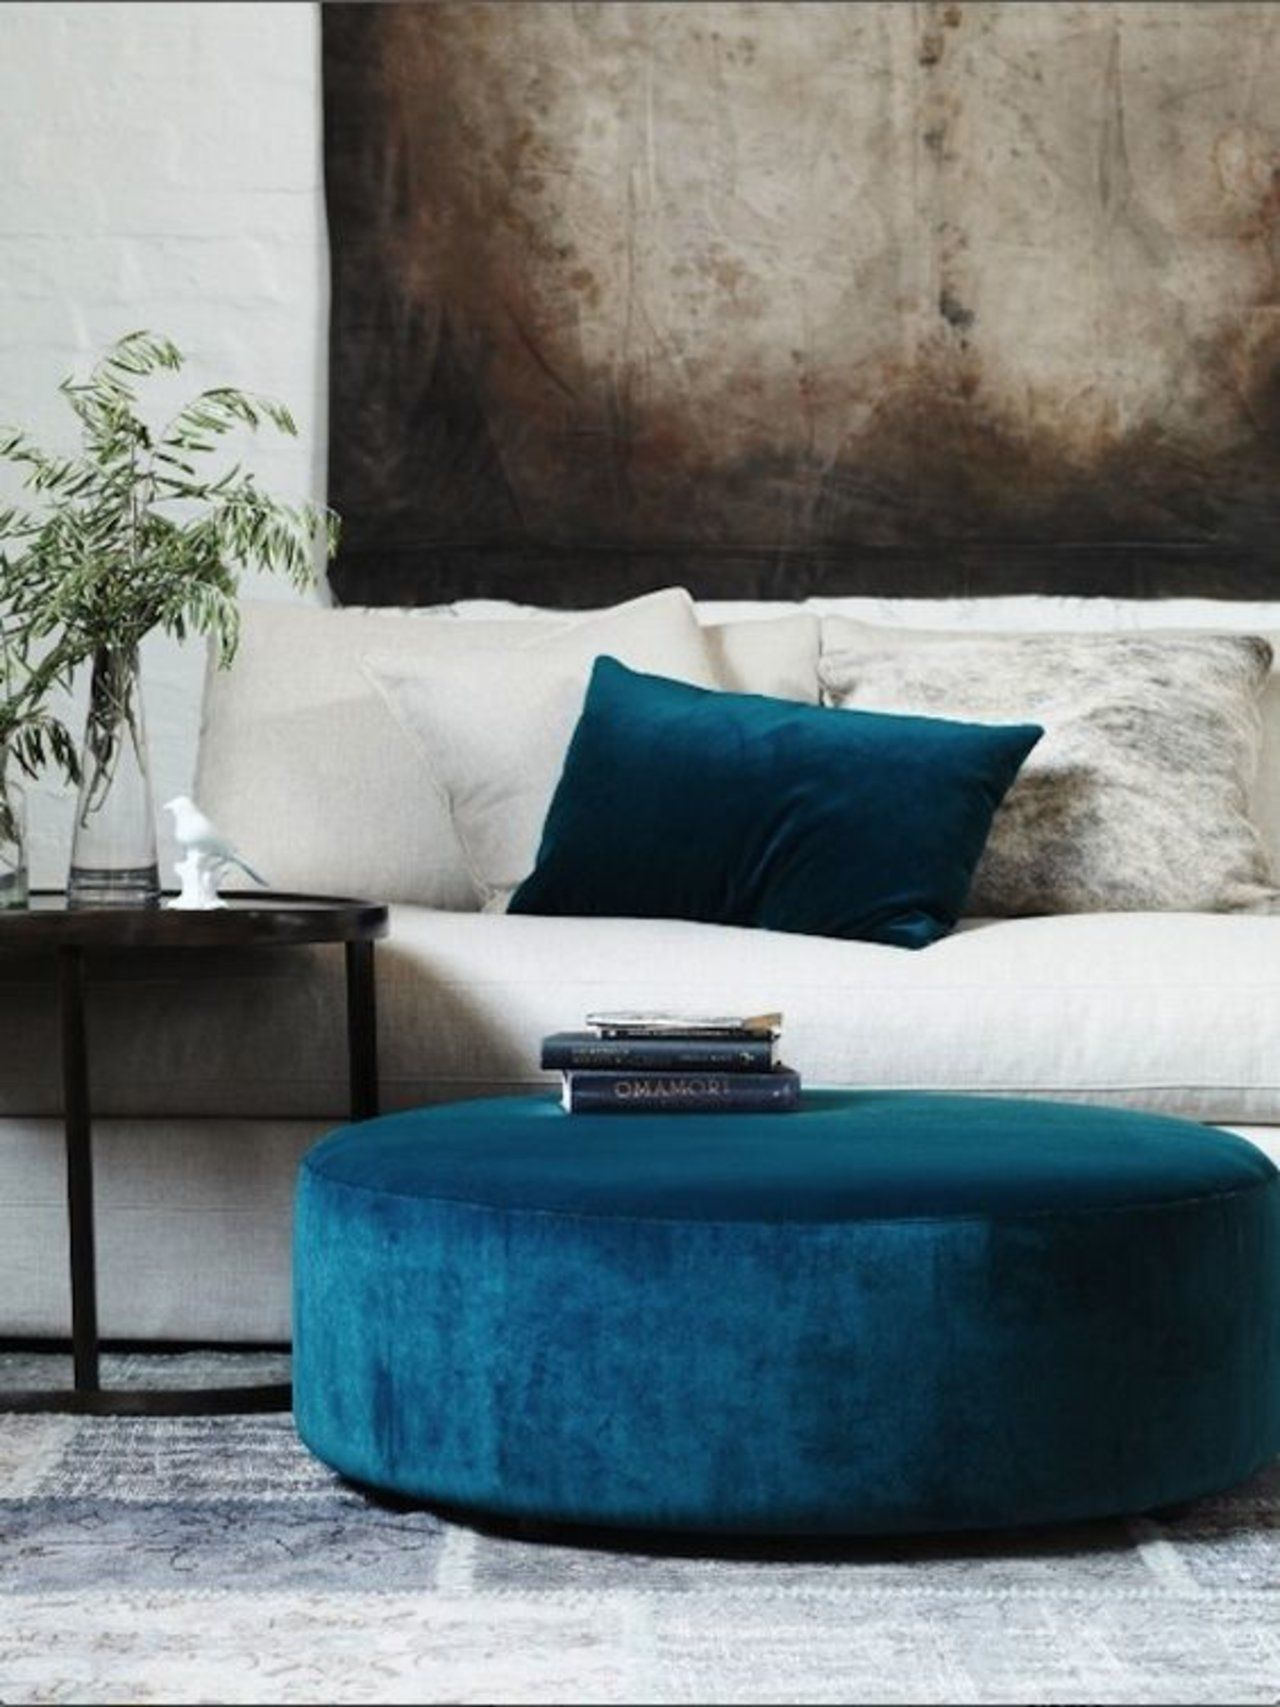 Ideas For Baby Proofing Your Home: Use An Ottoman As A Coffee Table!